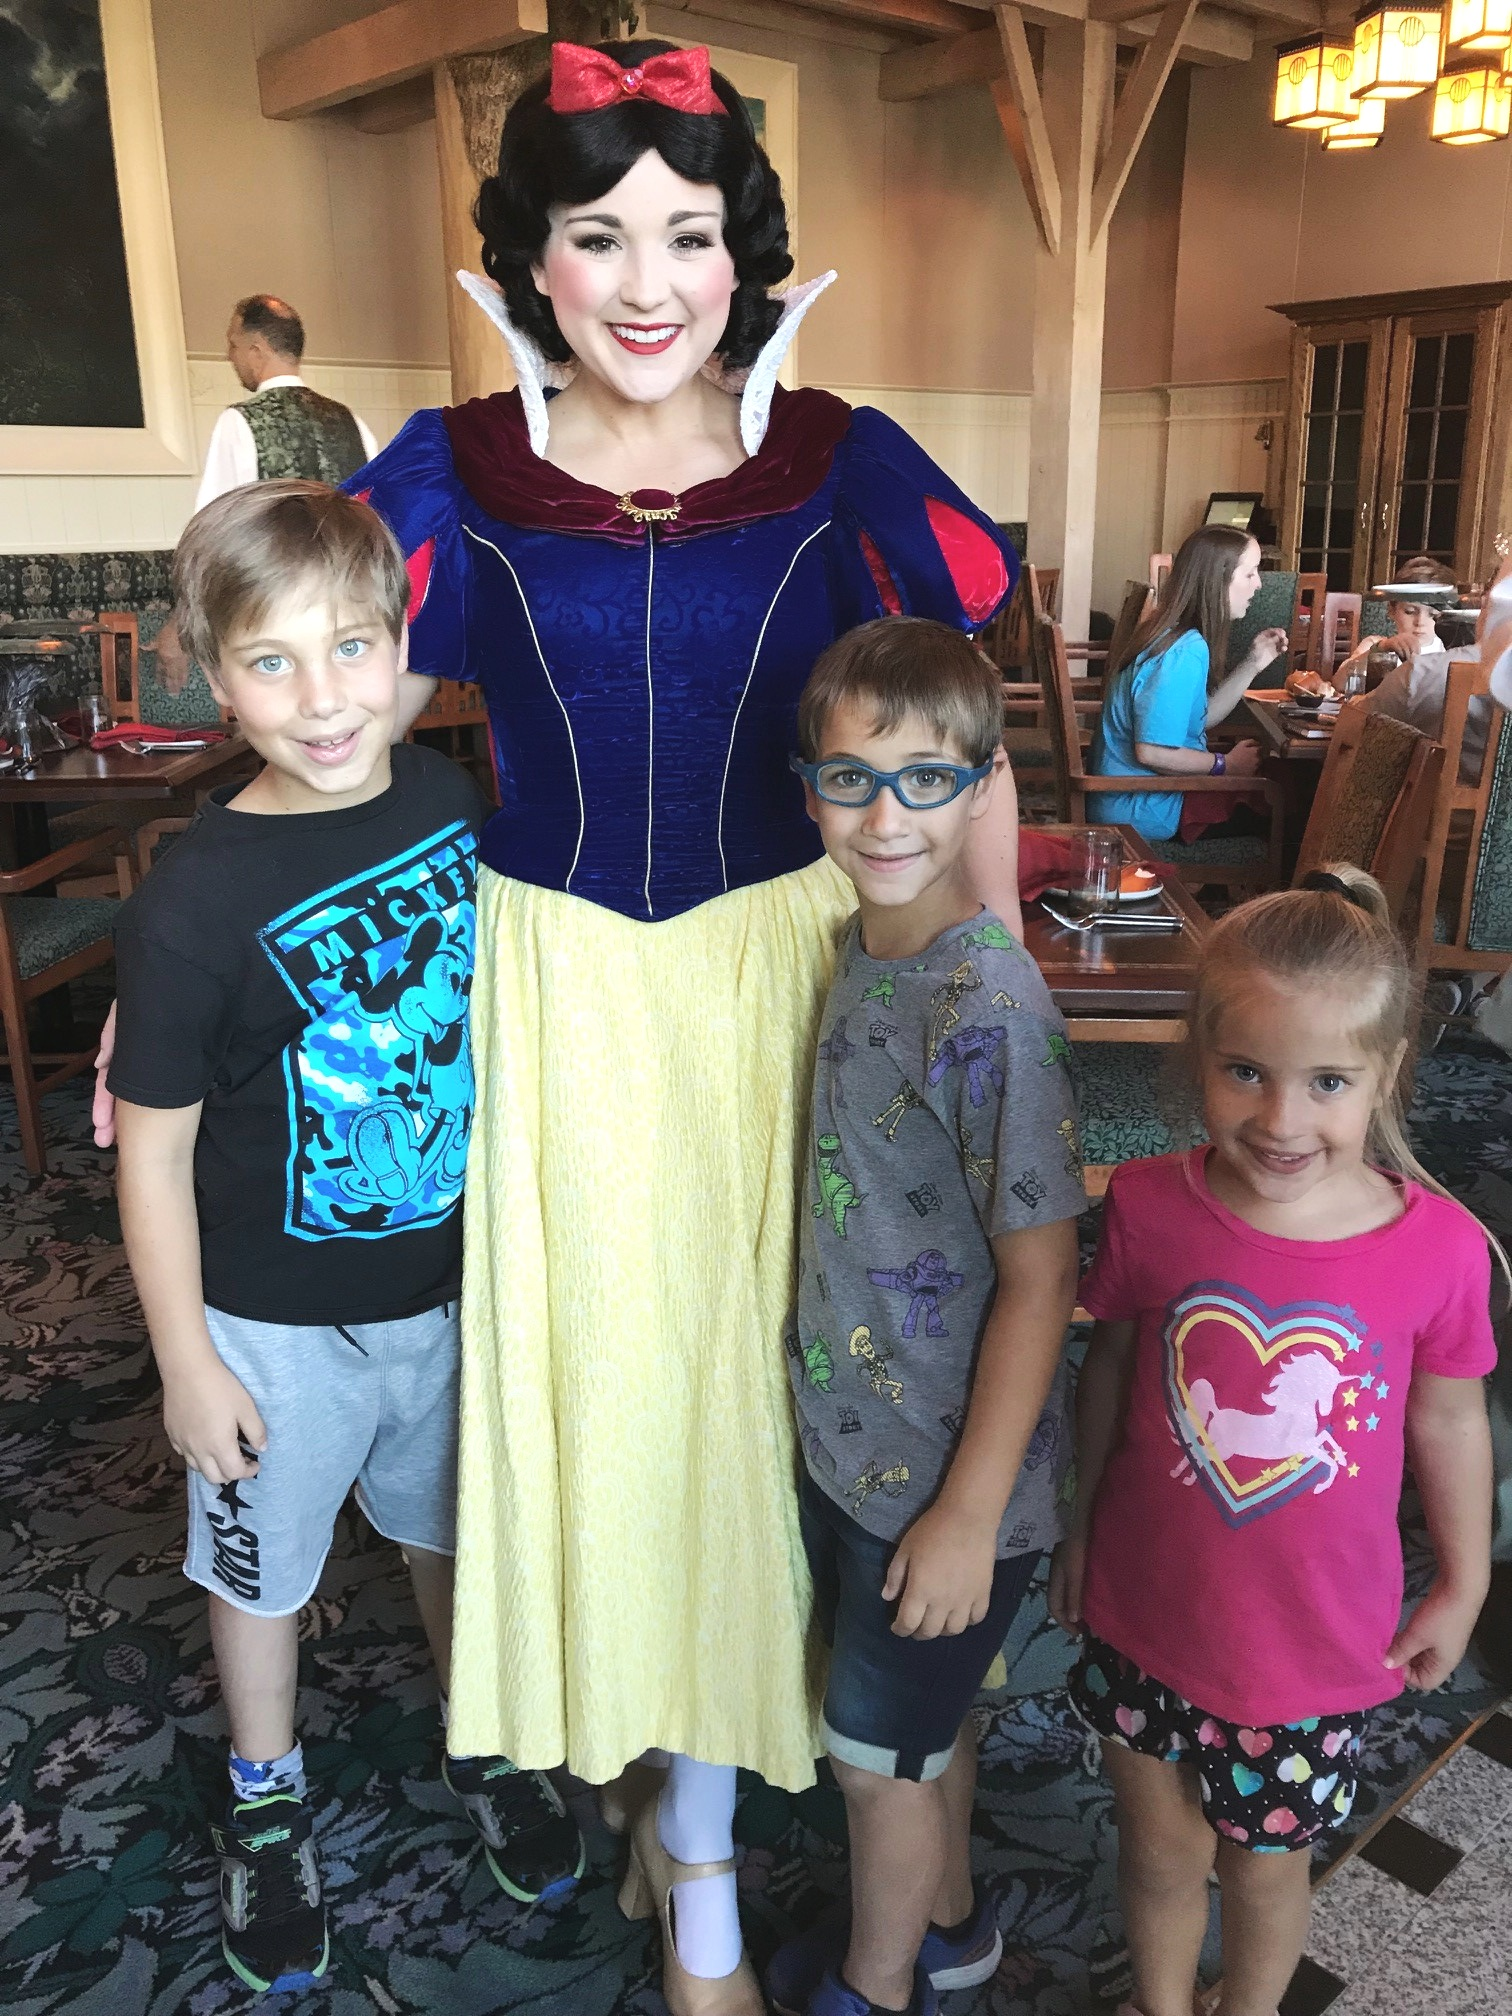 Snow White during the Character Meet and Greet